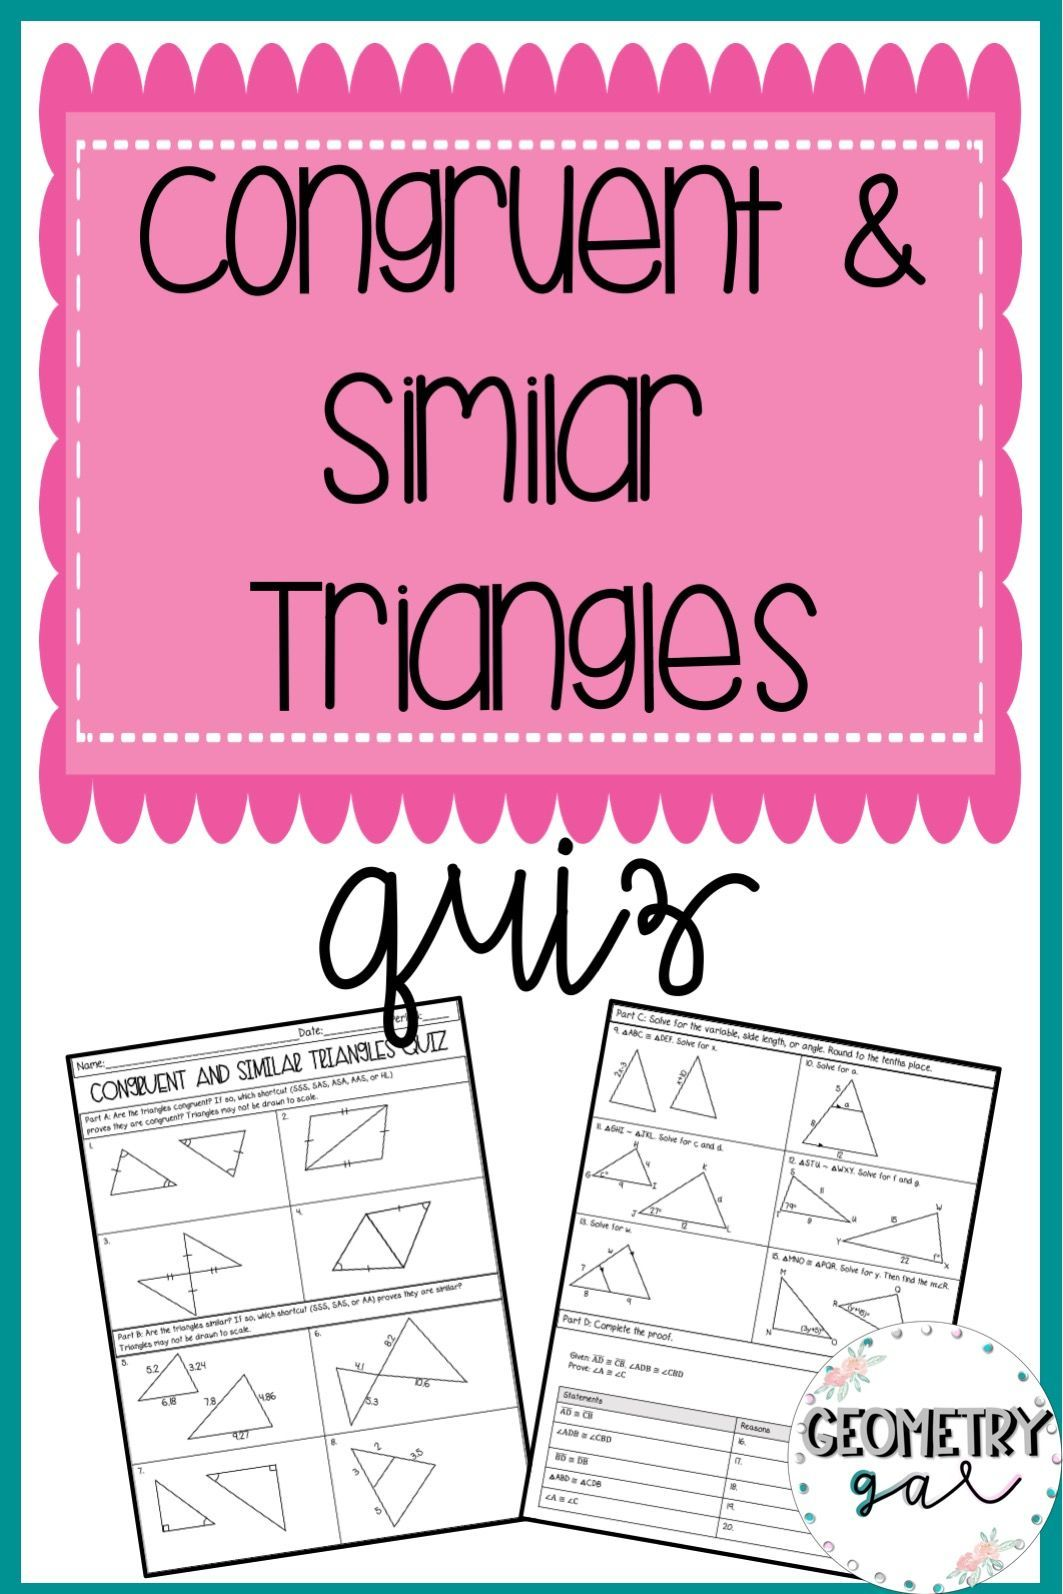 Congruent and Similar Triangle Quizzes Similar triangles